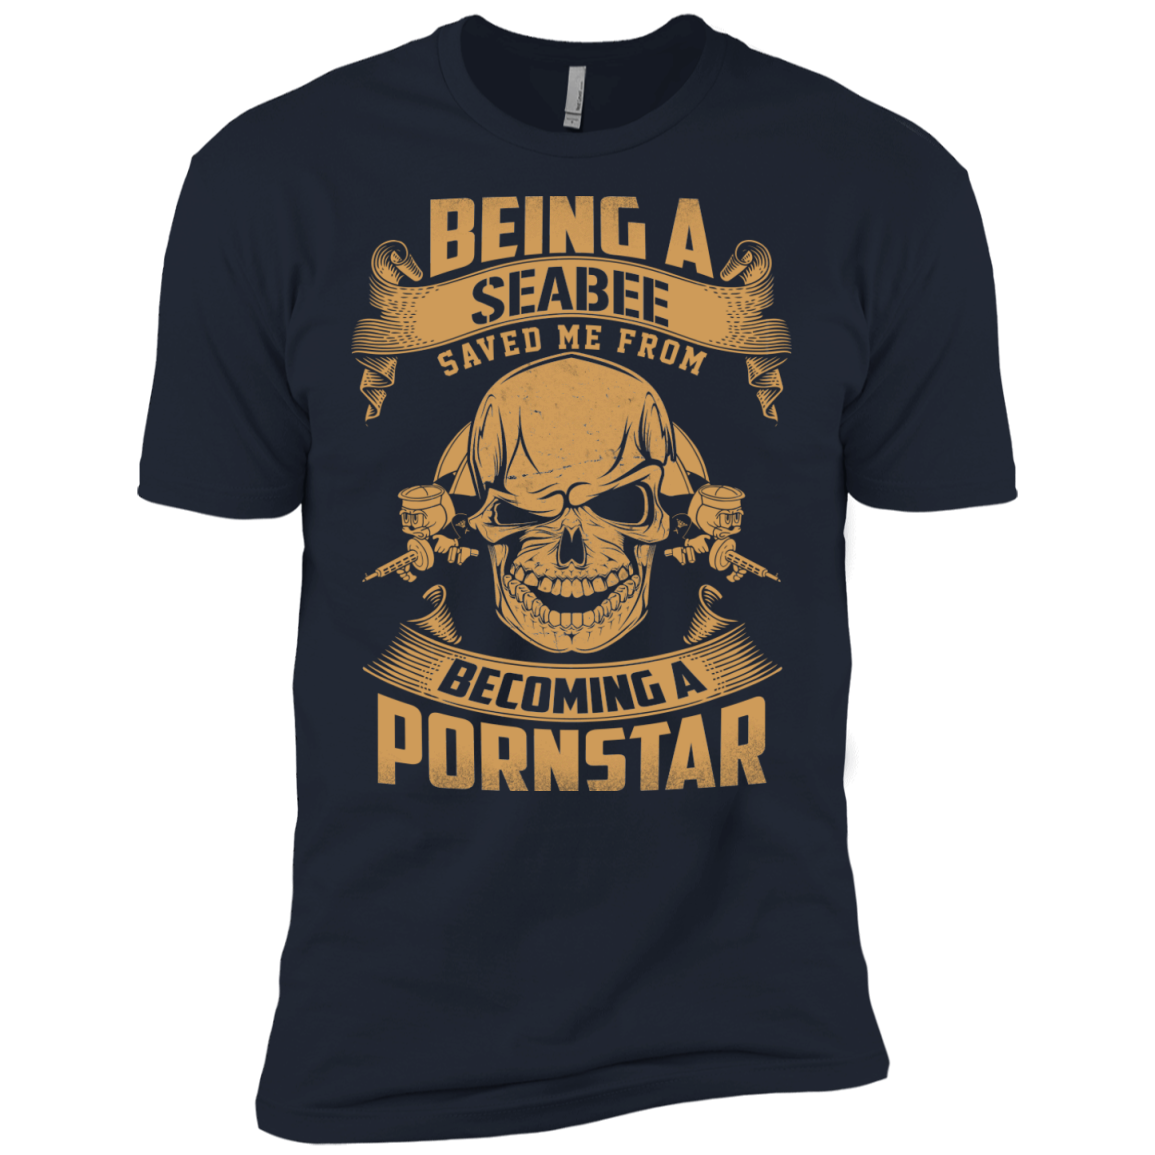 Being A Veteran Saved Me From Becoming A Pornstar TShirt - The Sun Cat